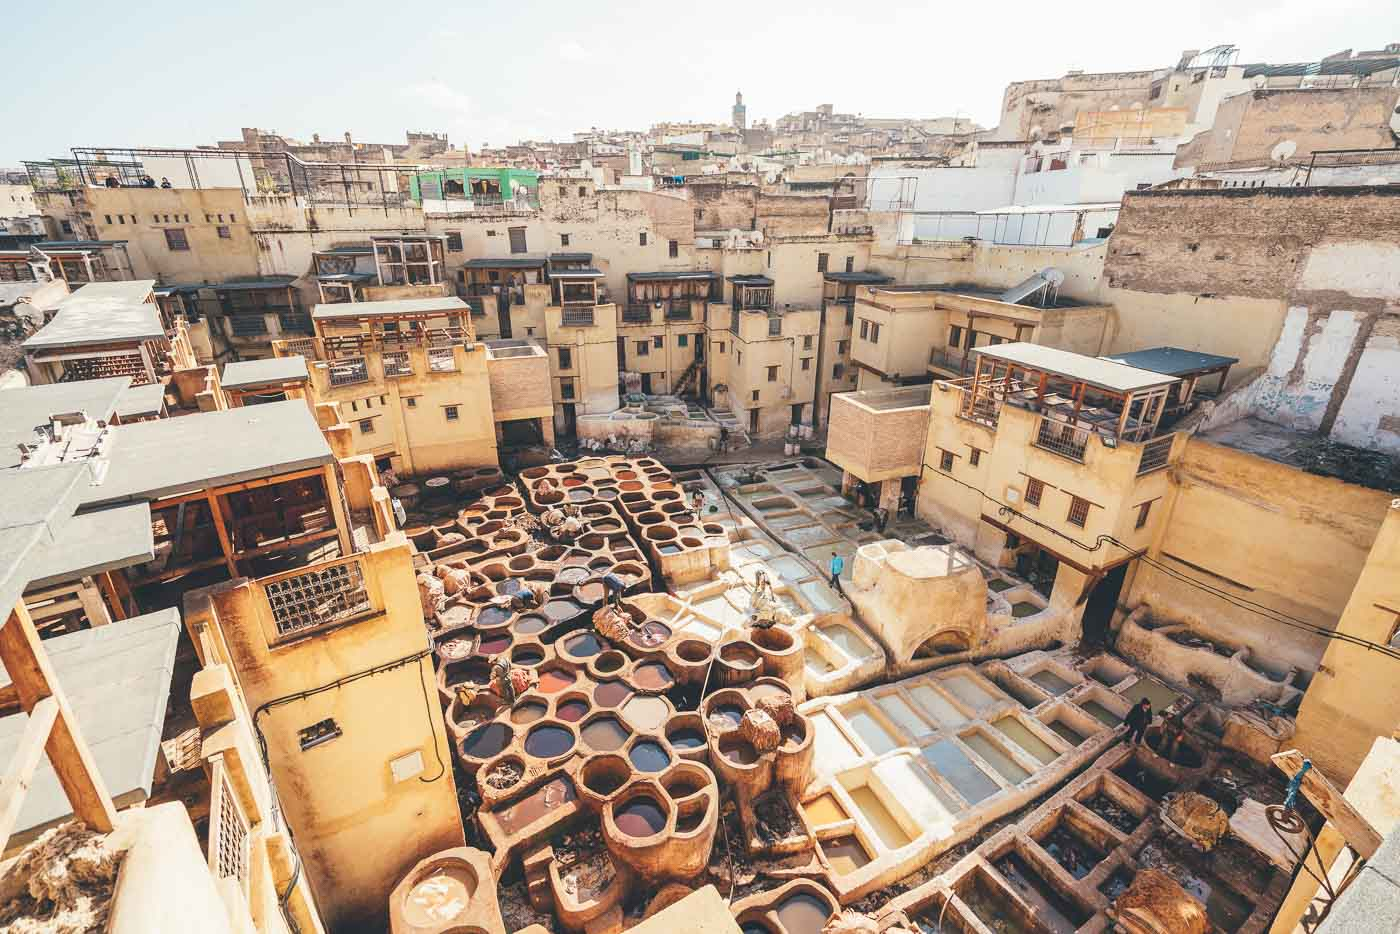 Leather tannery at Fes, Morocco